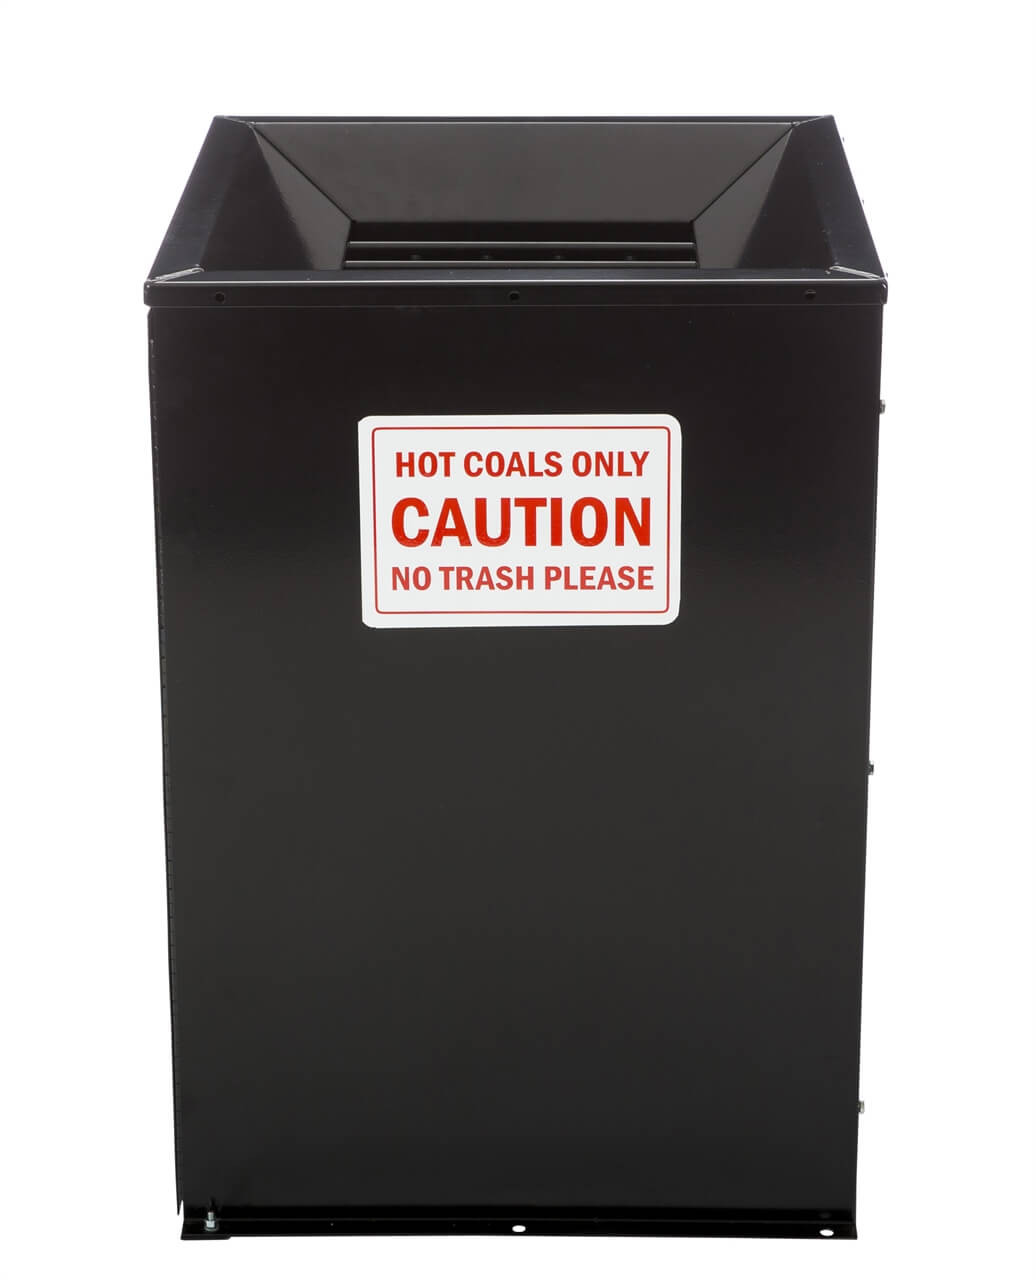 Hot Coal Bin for Grill